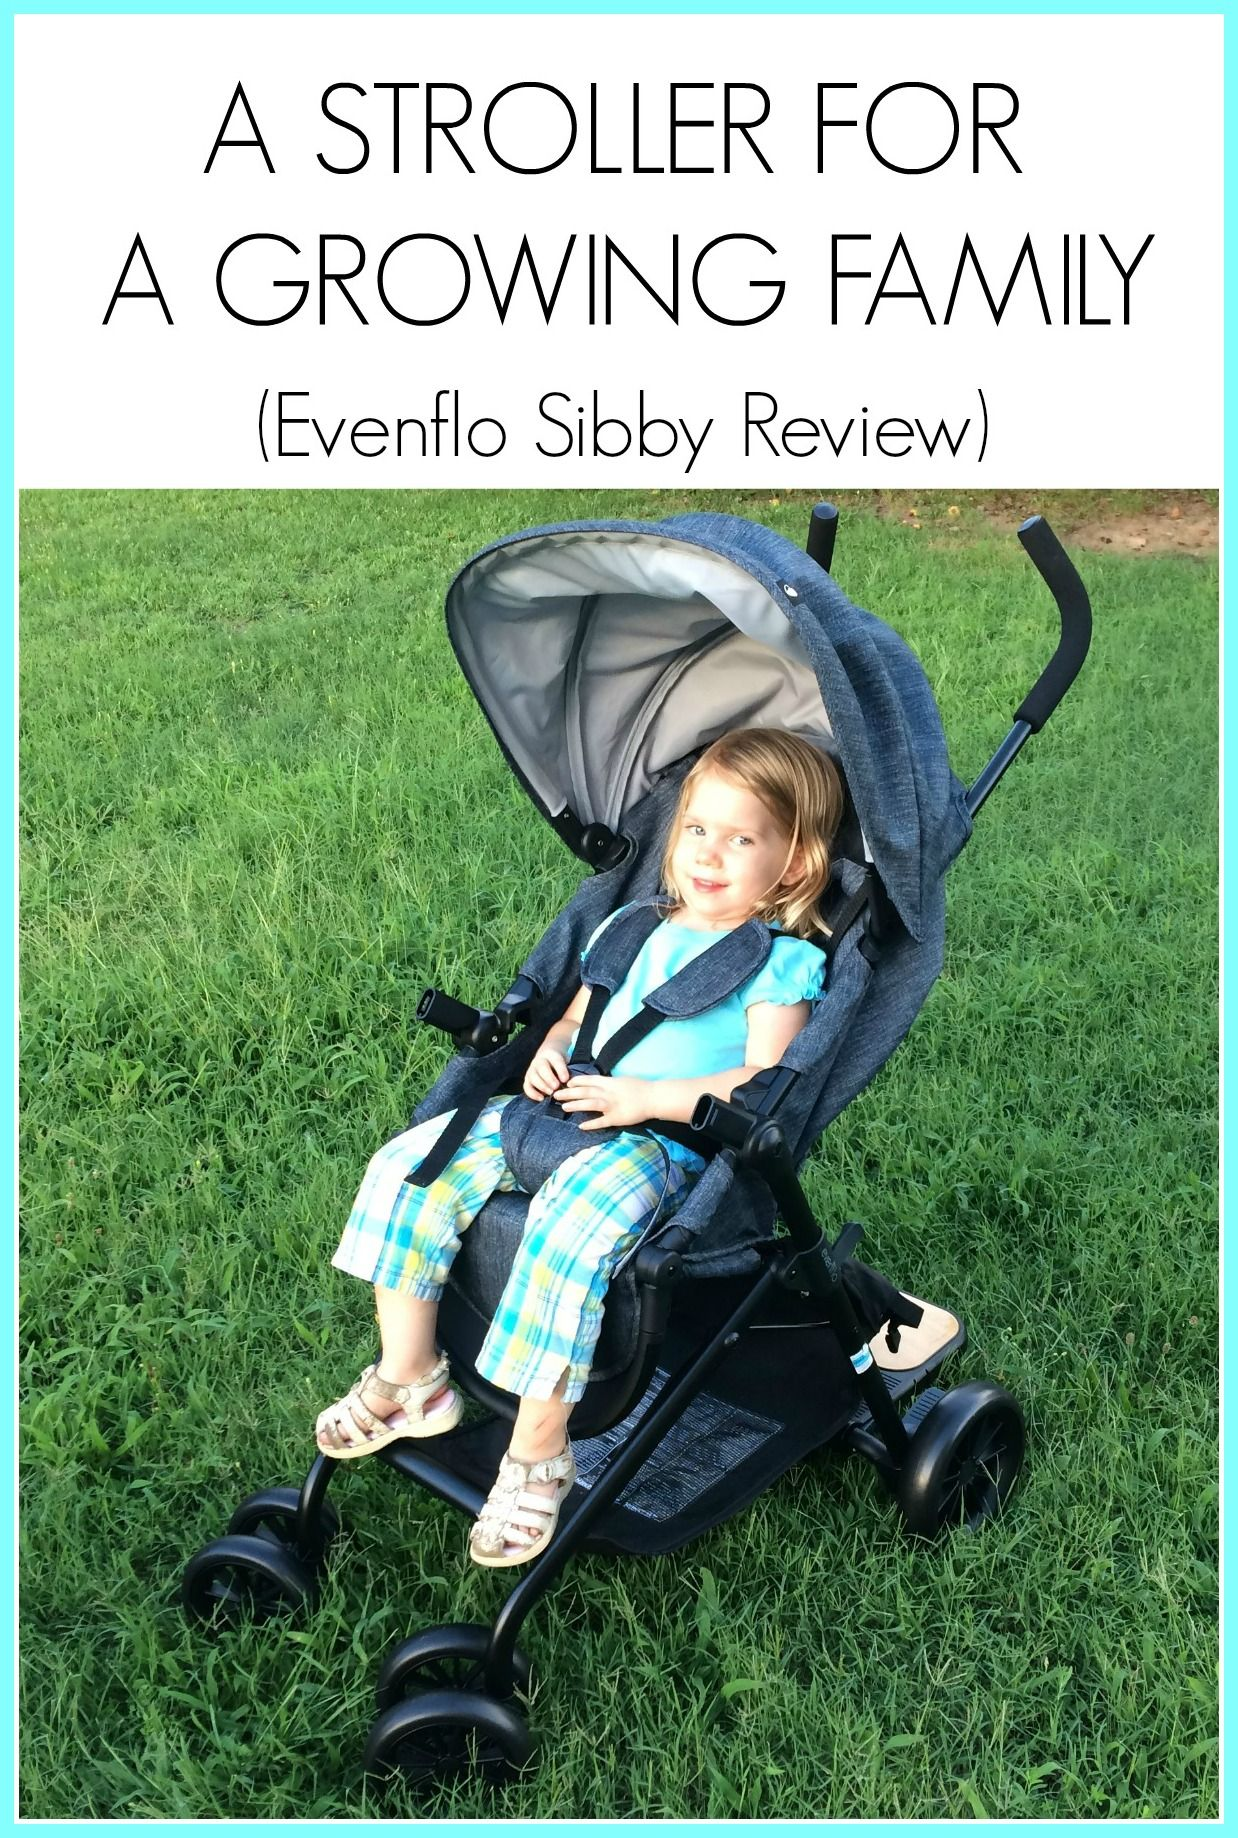 A Stroller For a Growing Family (Evenflo Sibby Review